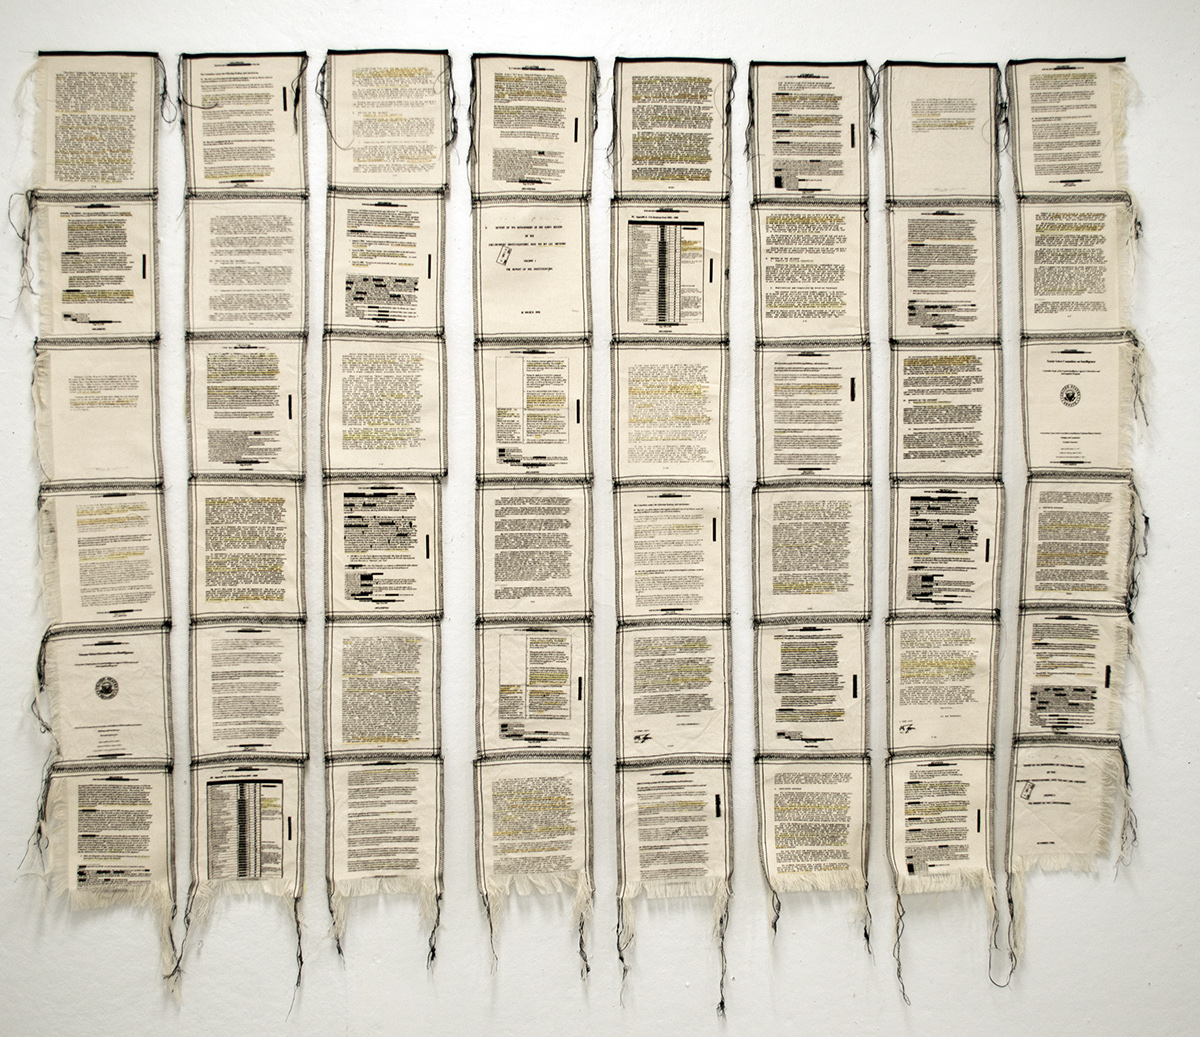 Redacted Files screen-printed Embroidery